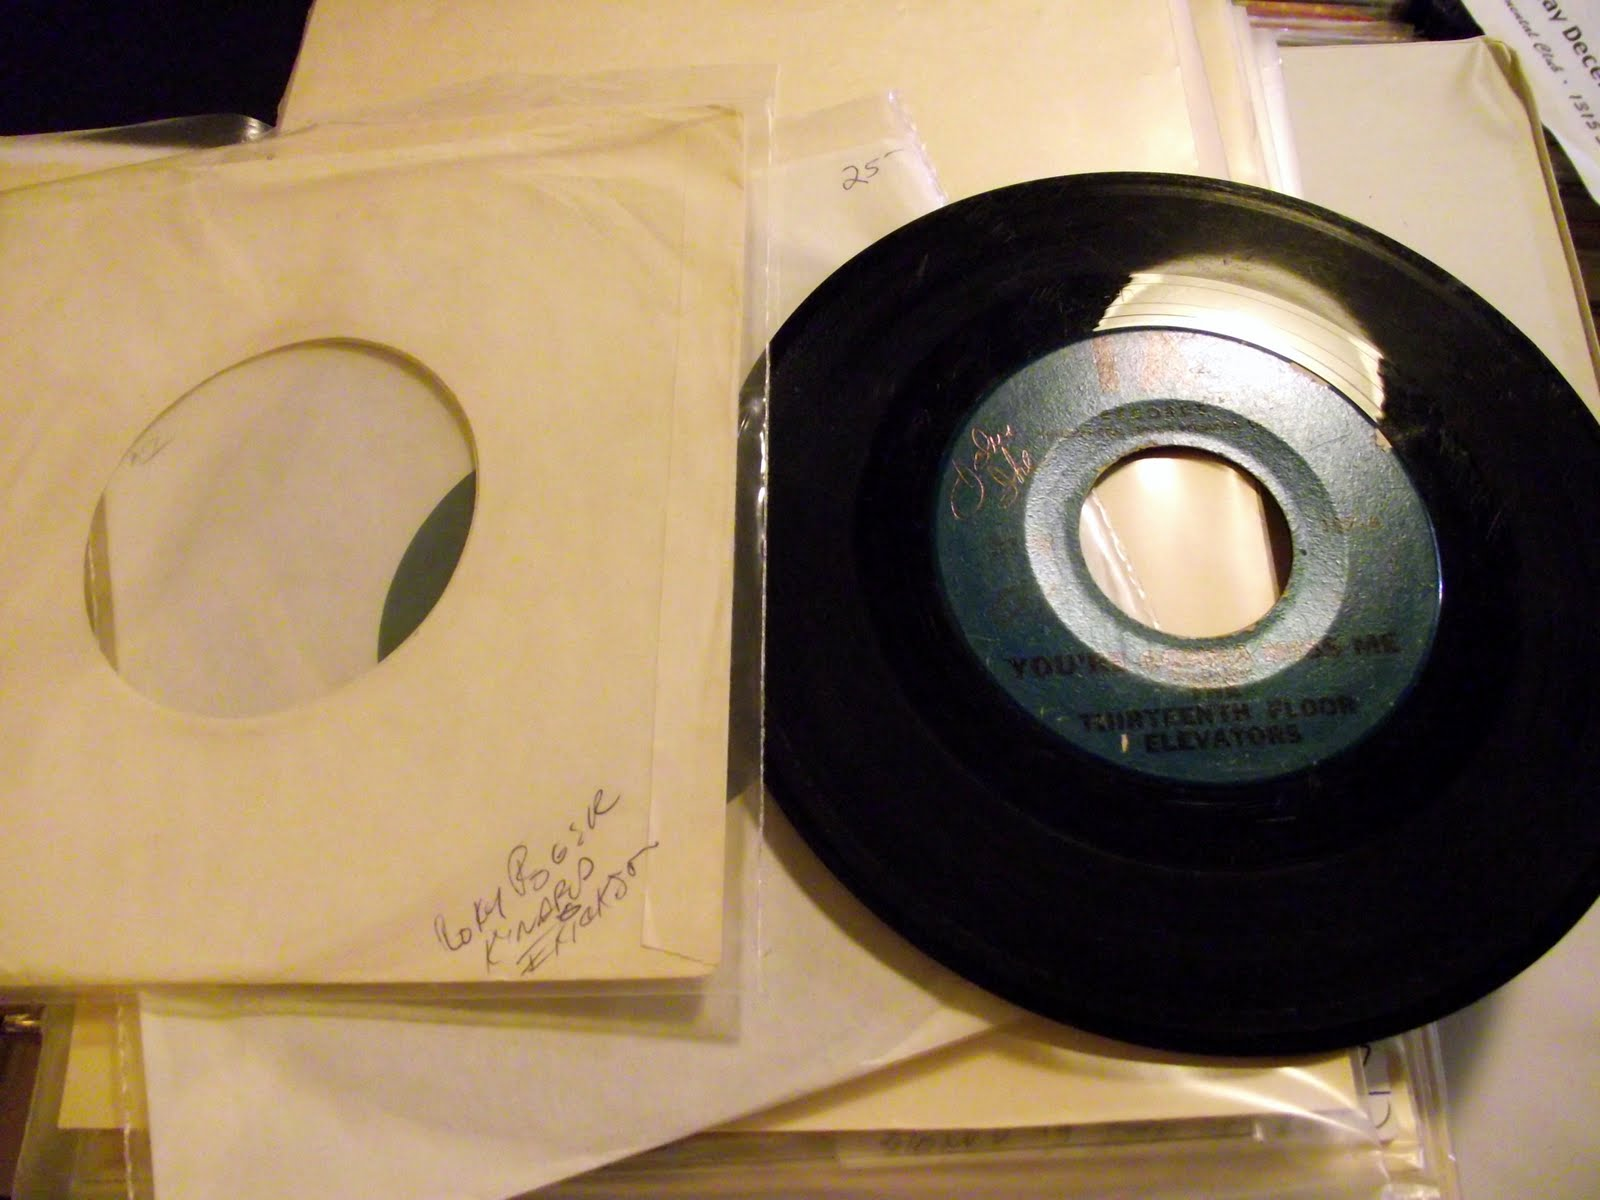 Crystlebordi signed 13th floor elevators tried to hide 45 rpm for 13th floor com